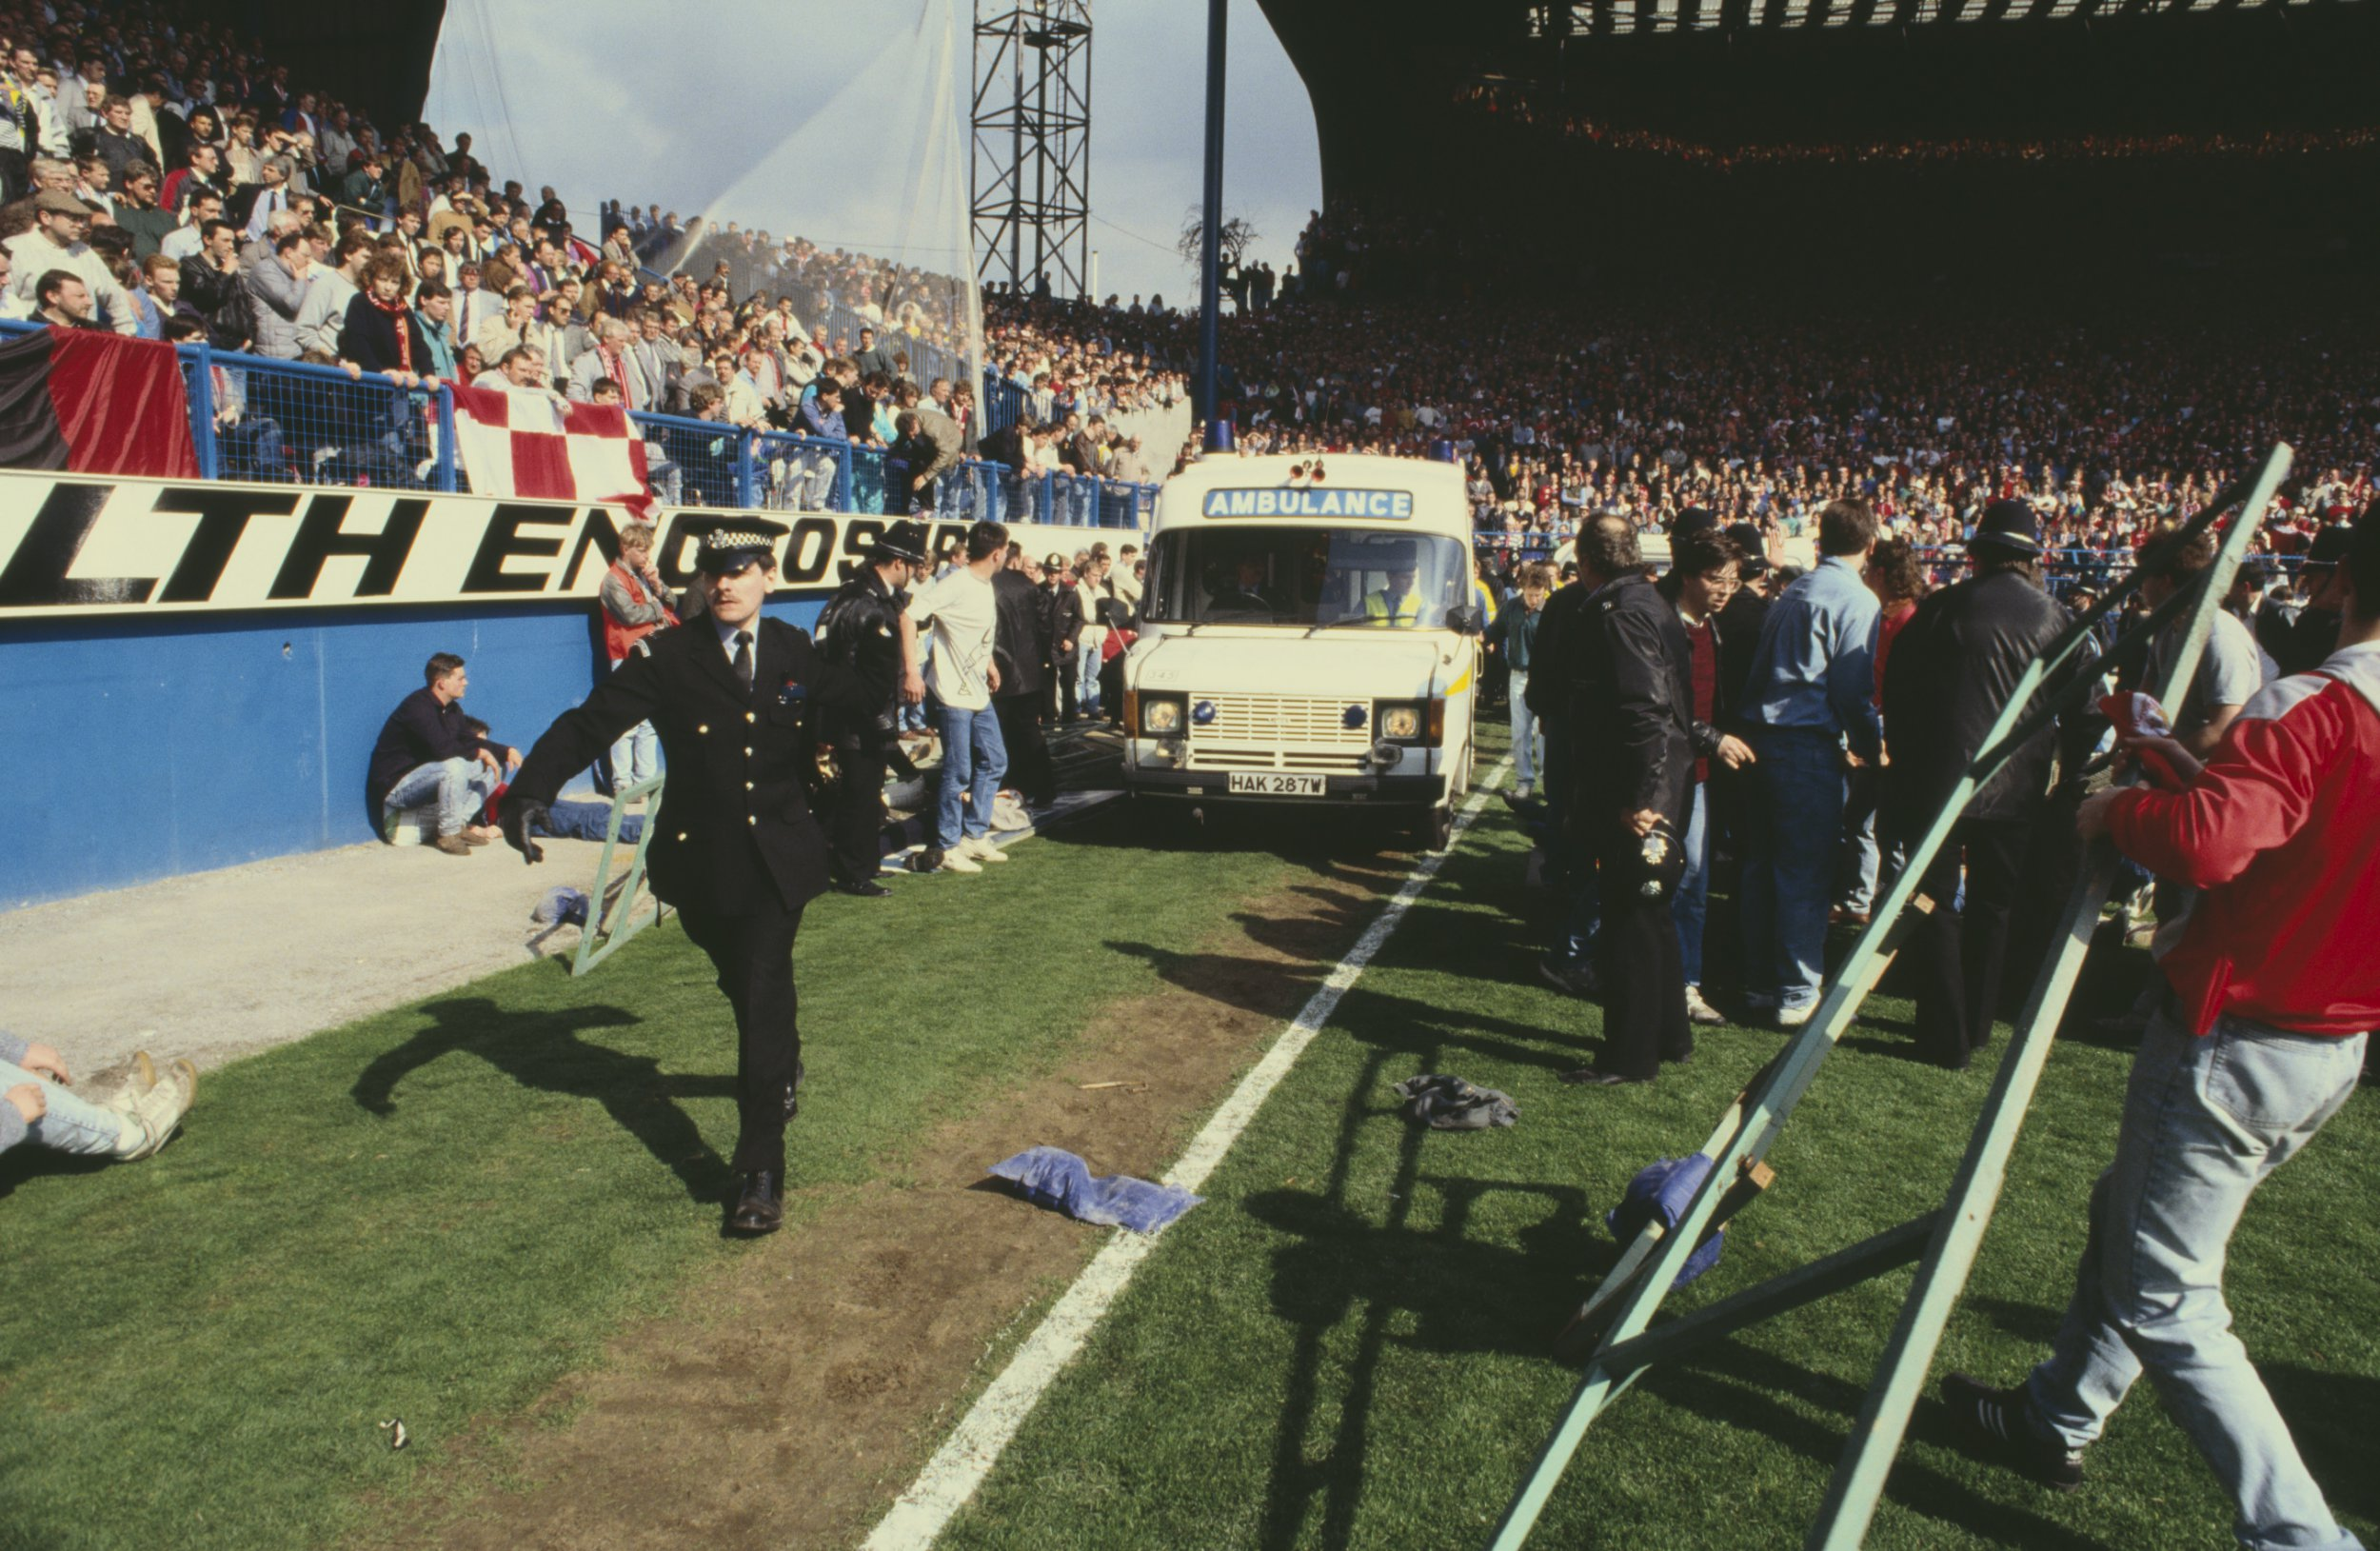 An ambulance at the Hillsborough football stadium in Sheffield where 96 people lost their lives in a human crush accident